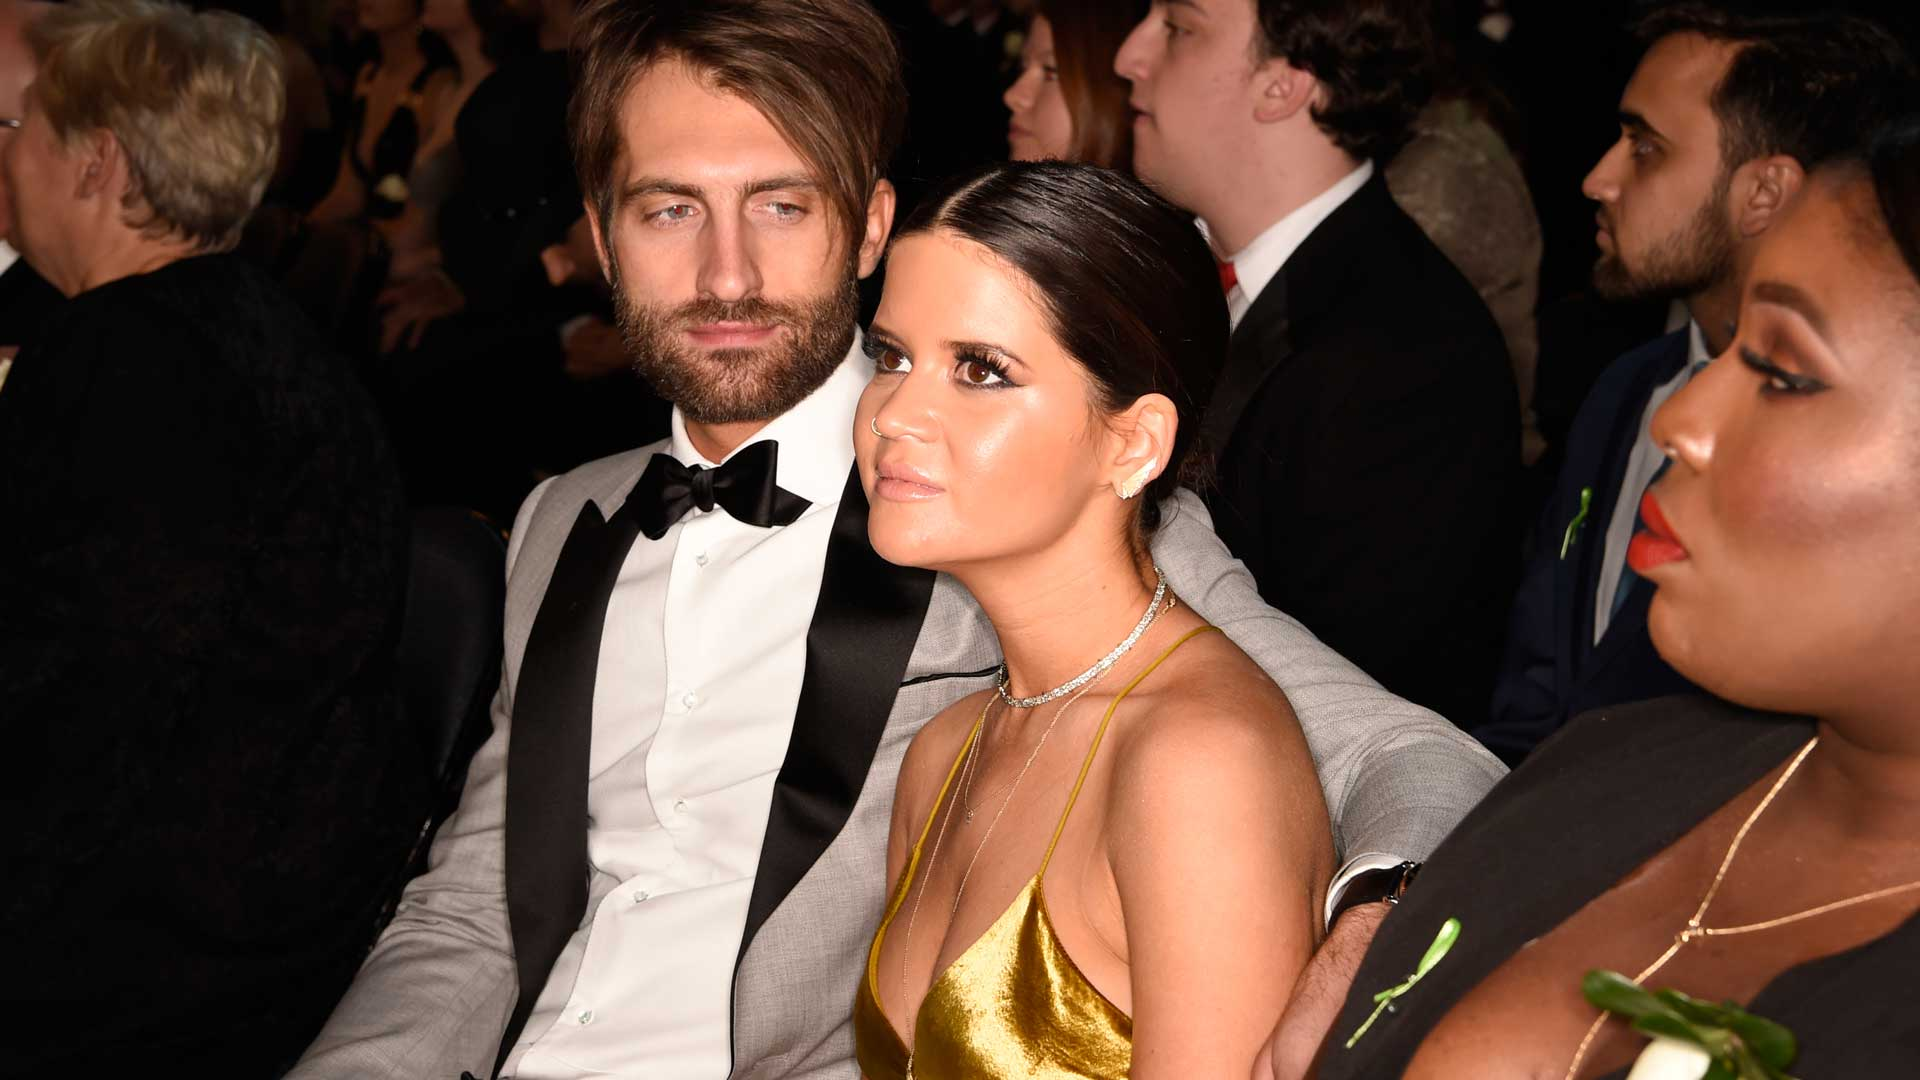 Country songstress and GRAMMY performer Maren Morris takes her seat beside her fiancé, Ryan Hurd.